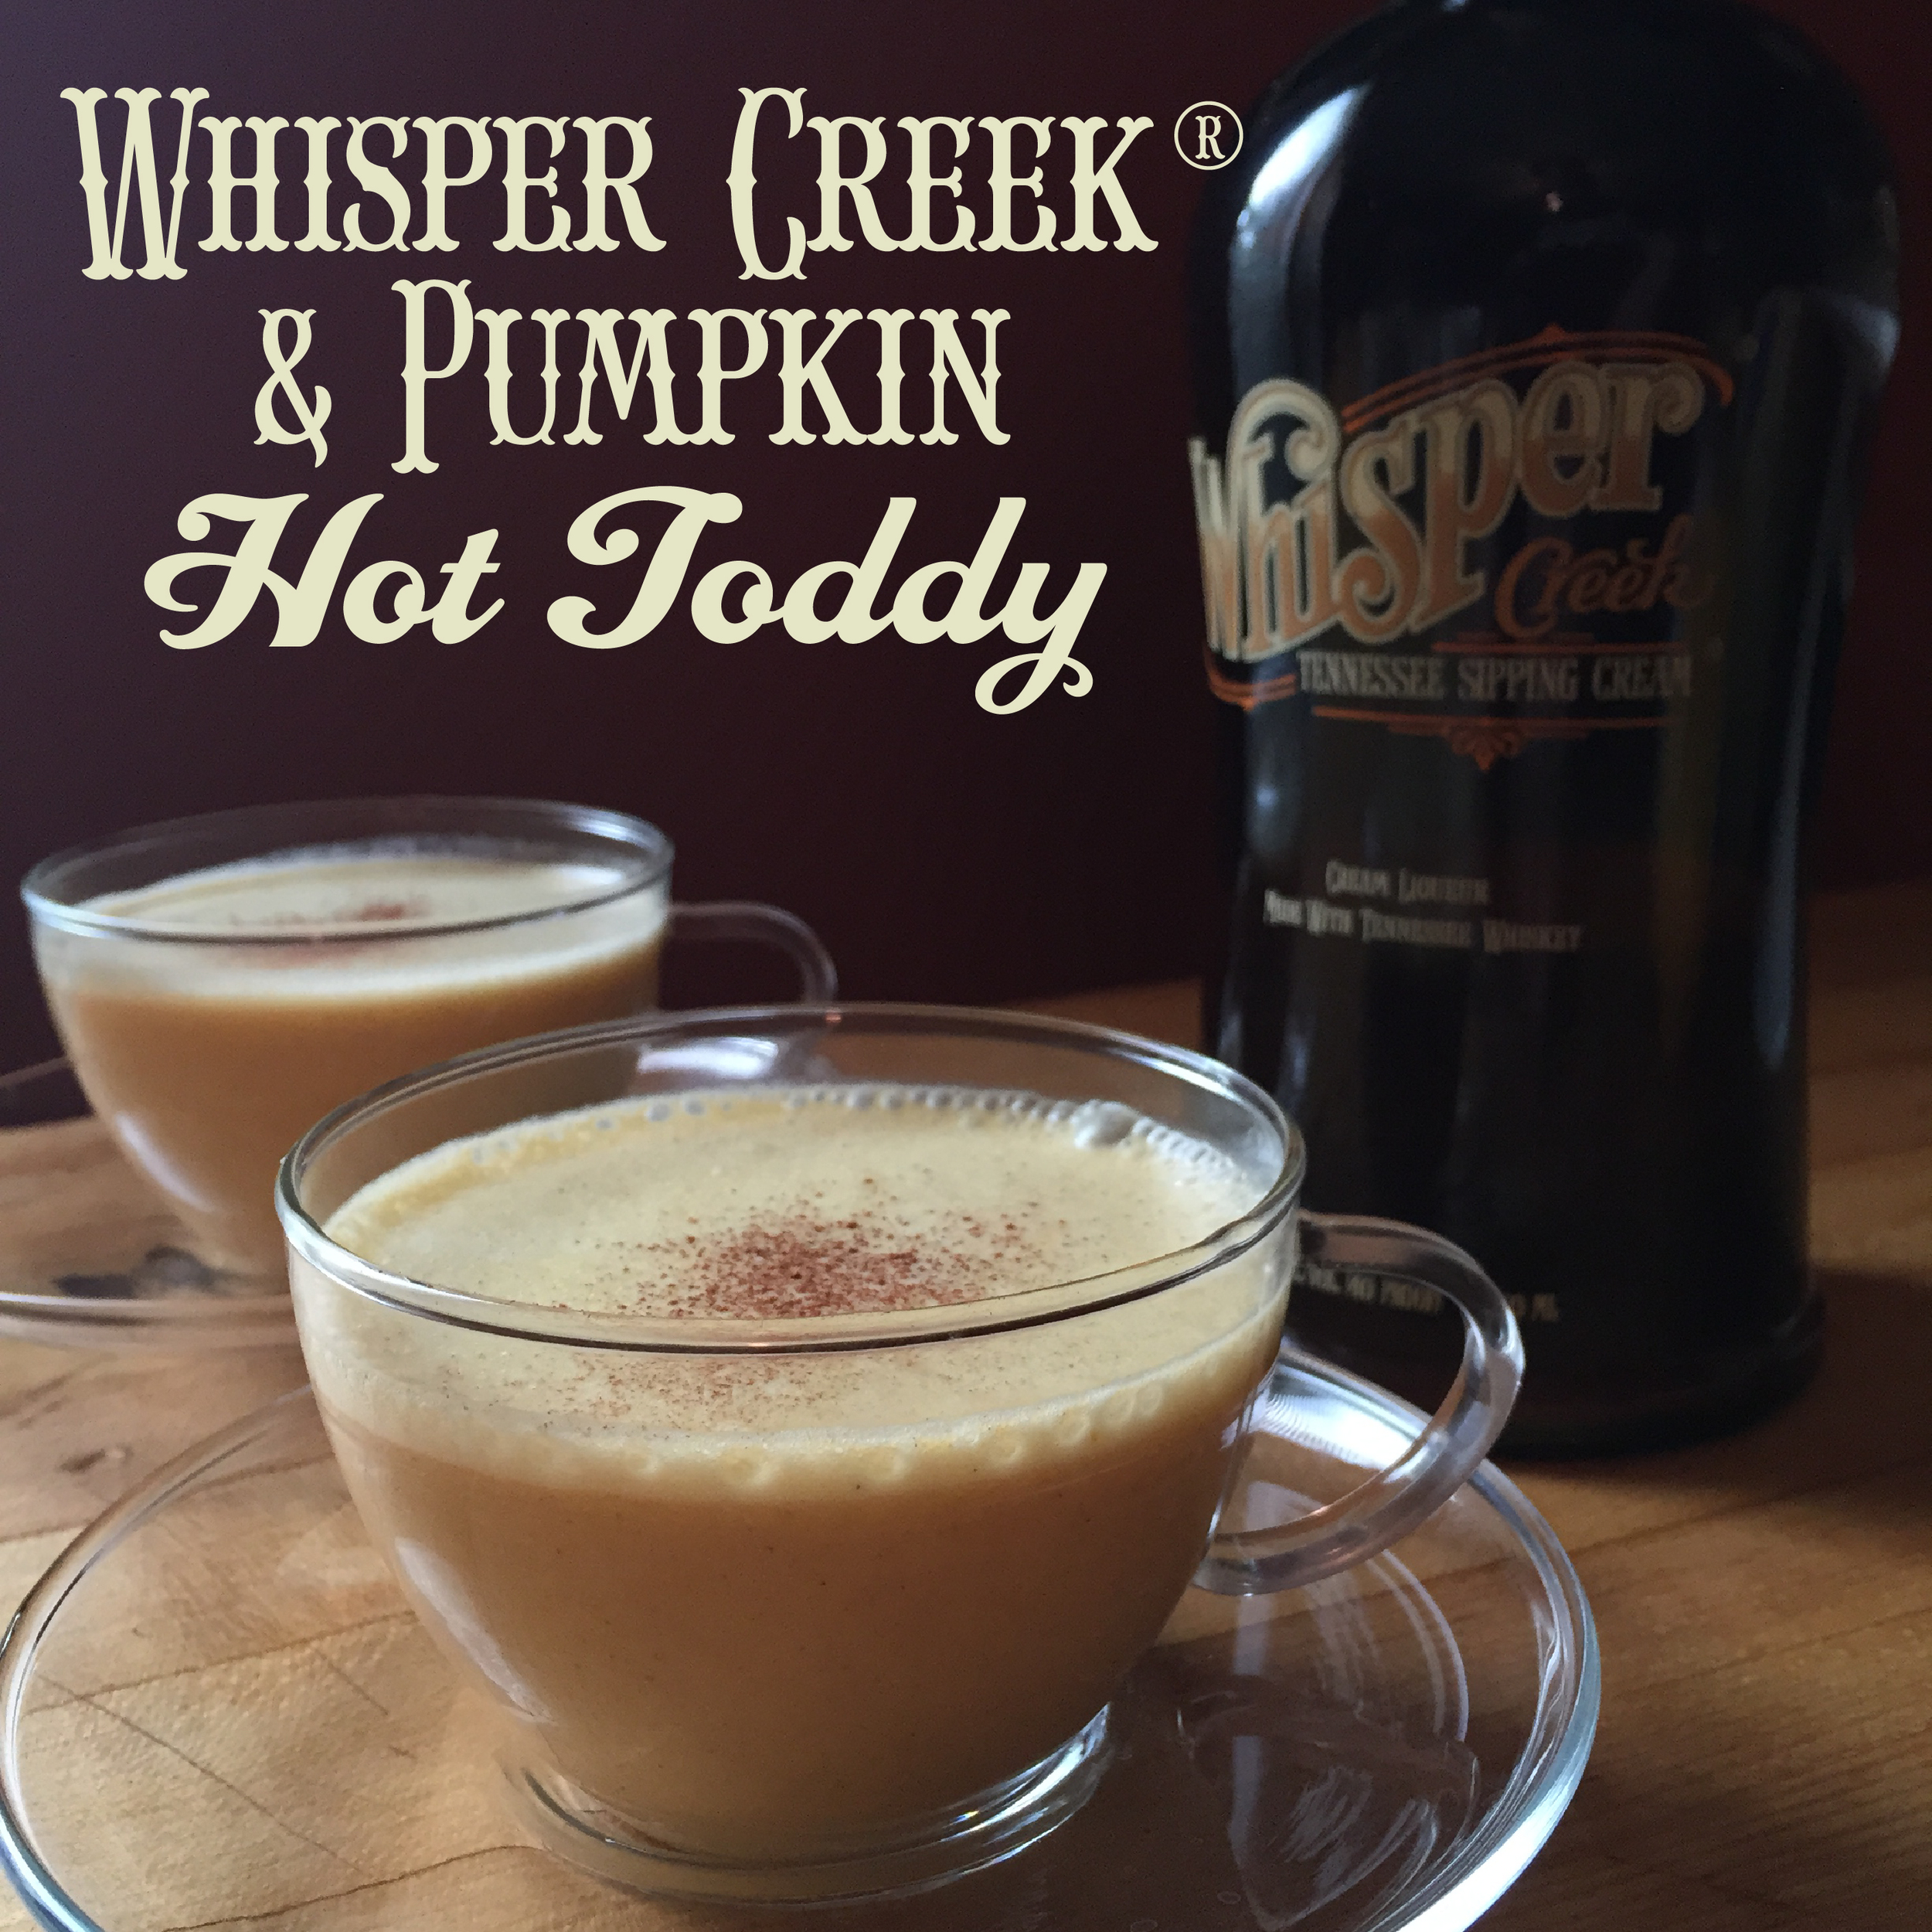 Real Pumpkin and Whisper Creek Tennessee Sipping Cream make this hot cocktail one to snuggle up on the couch with!